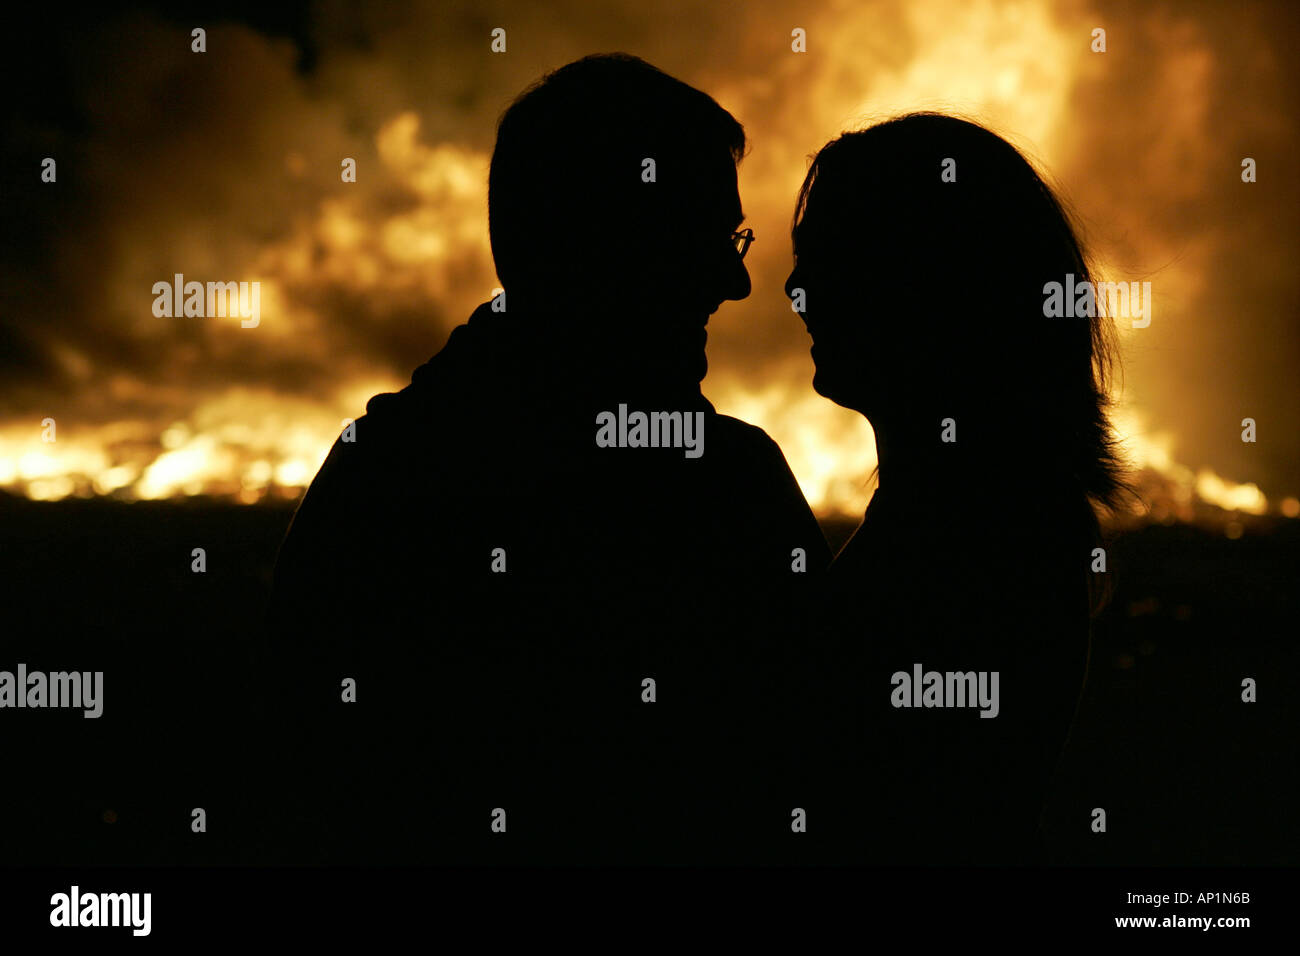 couple in front of night bonfire - Stock Image